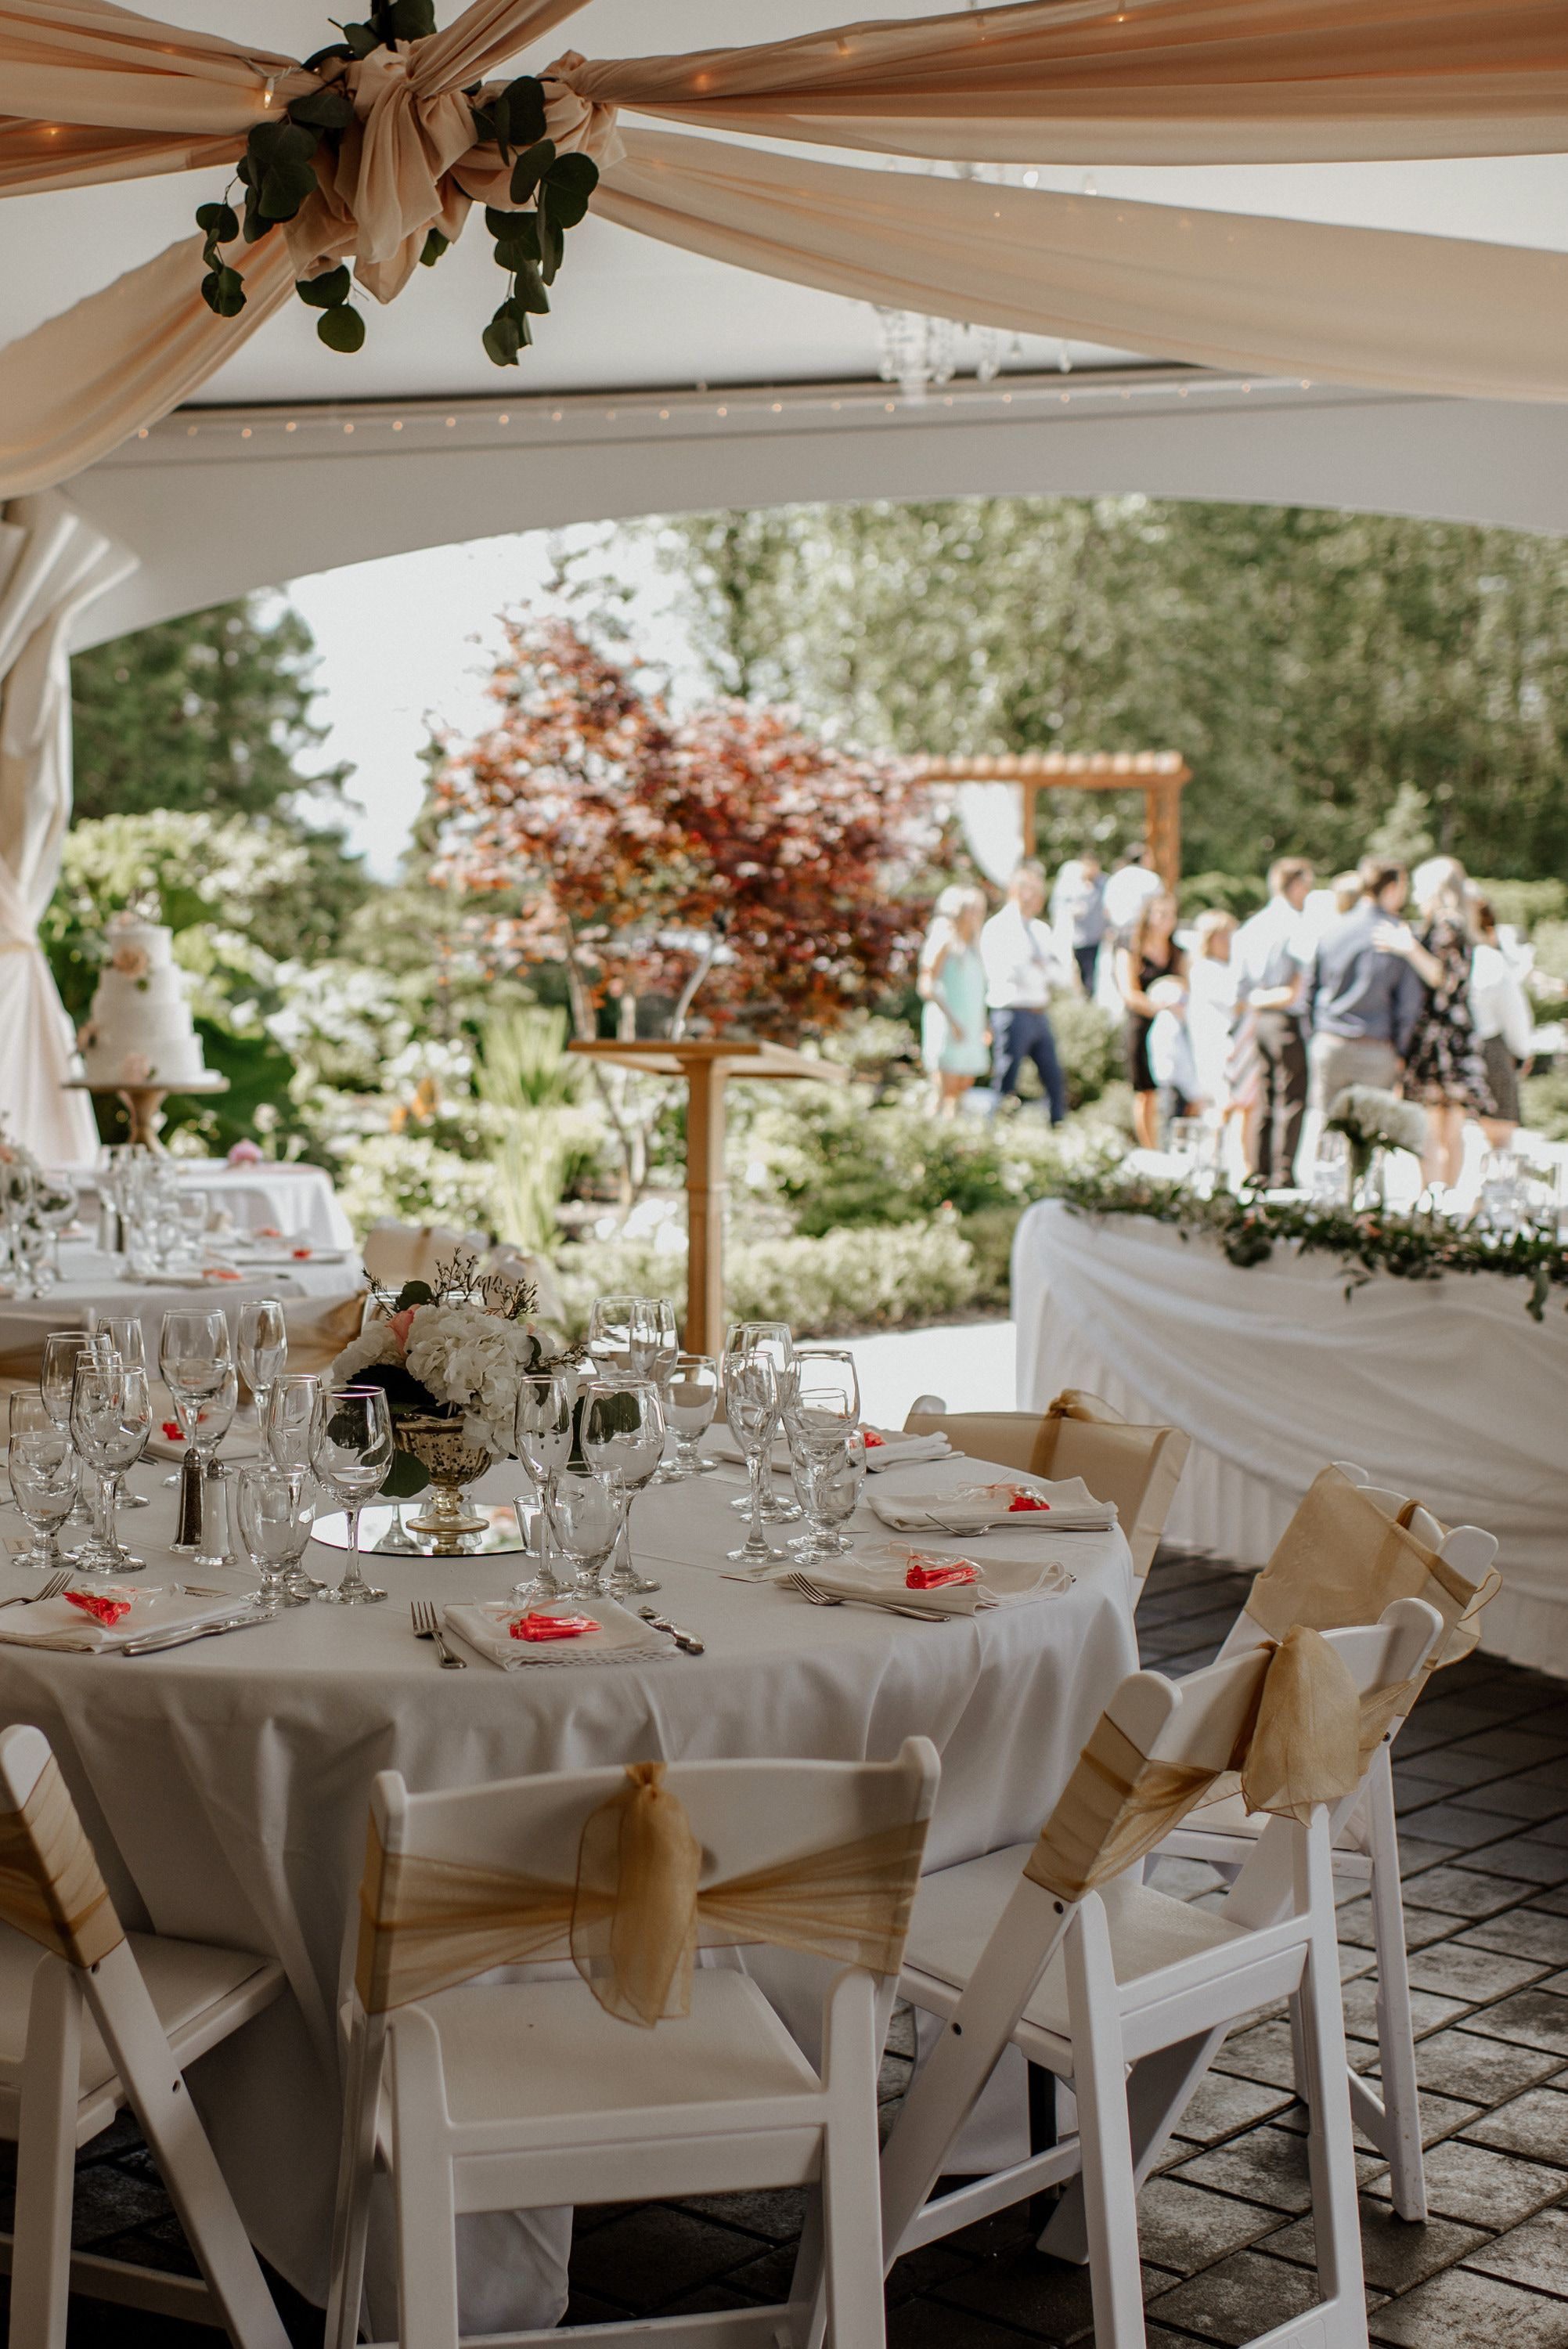 41+ Best Wedding Venues In Vancouver Bc Images